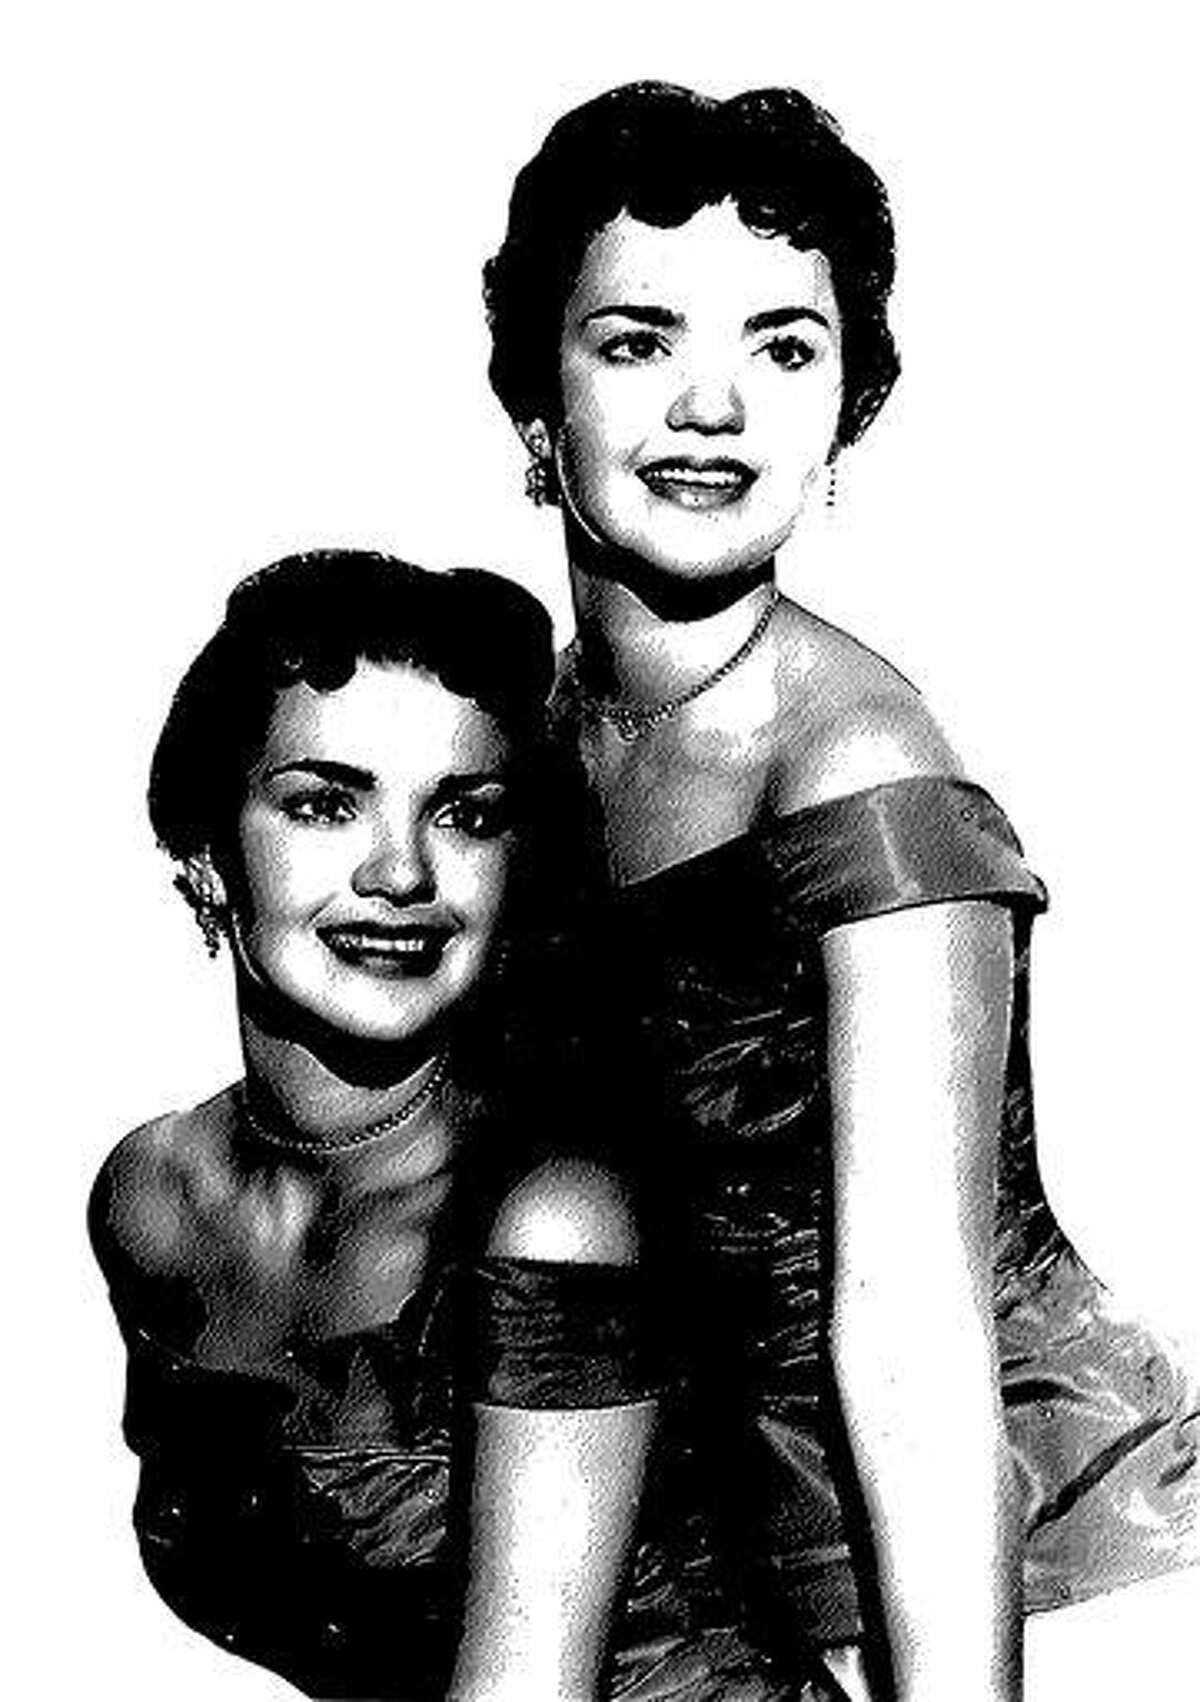 This undated copy of a photo provided by the El Dorado County Sheriff's Office shows twin sisters Patricia and Joan Miller. It us unknown which sister is which. Authorities are asking for help finding the next of kin for the two 73-year-old twin sisters found dead together in their South Lake Tahoe, Calif., home. El Dorado County Sheriff's officials say they've ruled out foul play in the deaths the women, who appear to have died within a short time frame and were found Feb. 26. Associated Press